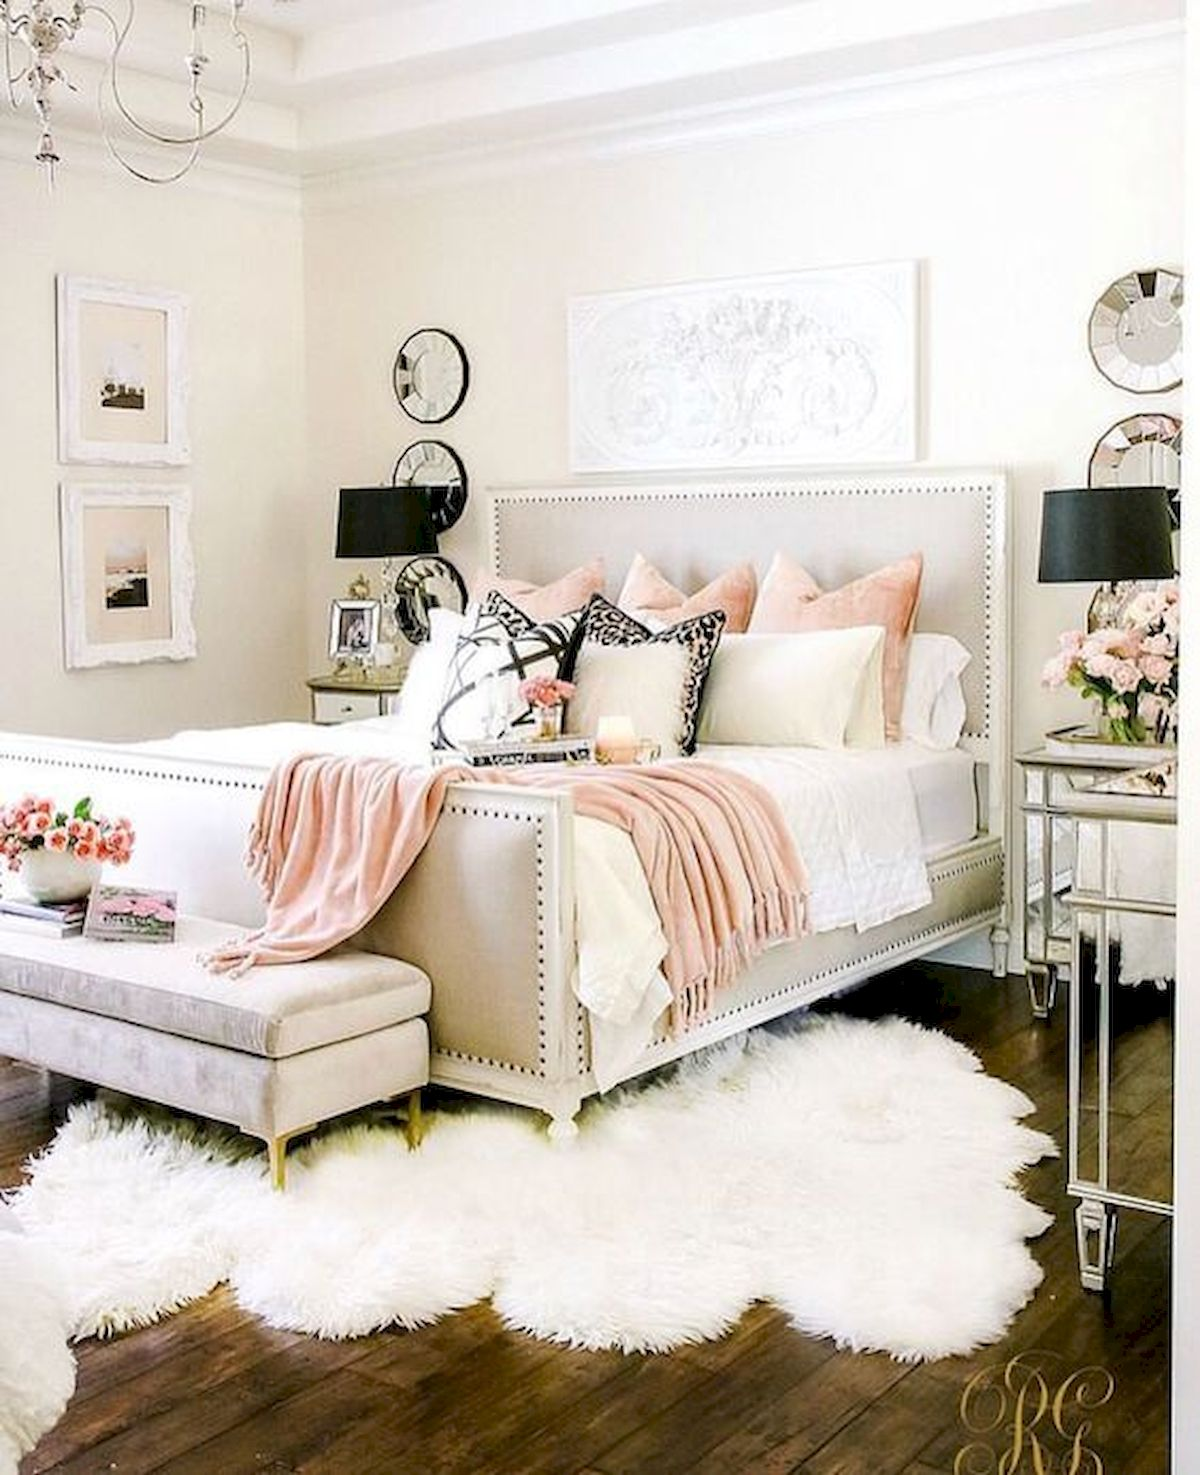 82 Cool Bedroom Ideas for Creative Couples (69) - artmyideas